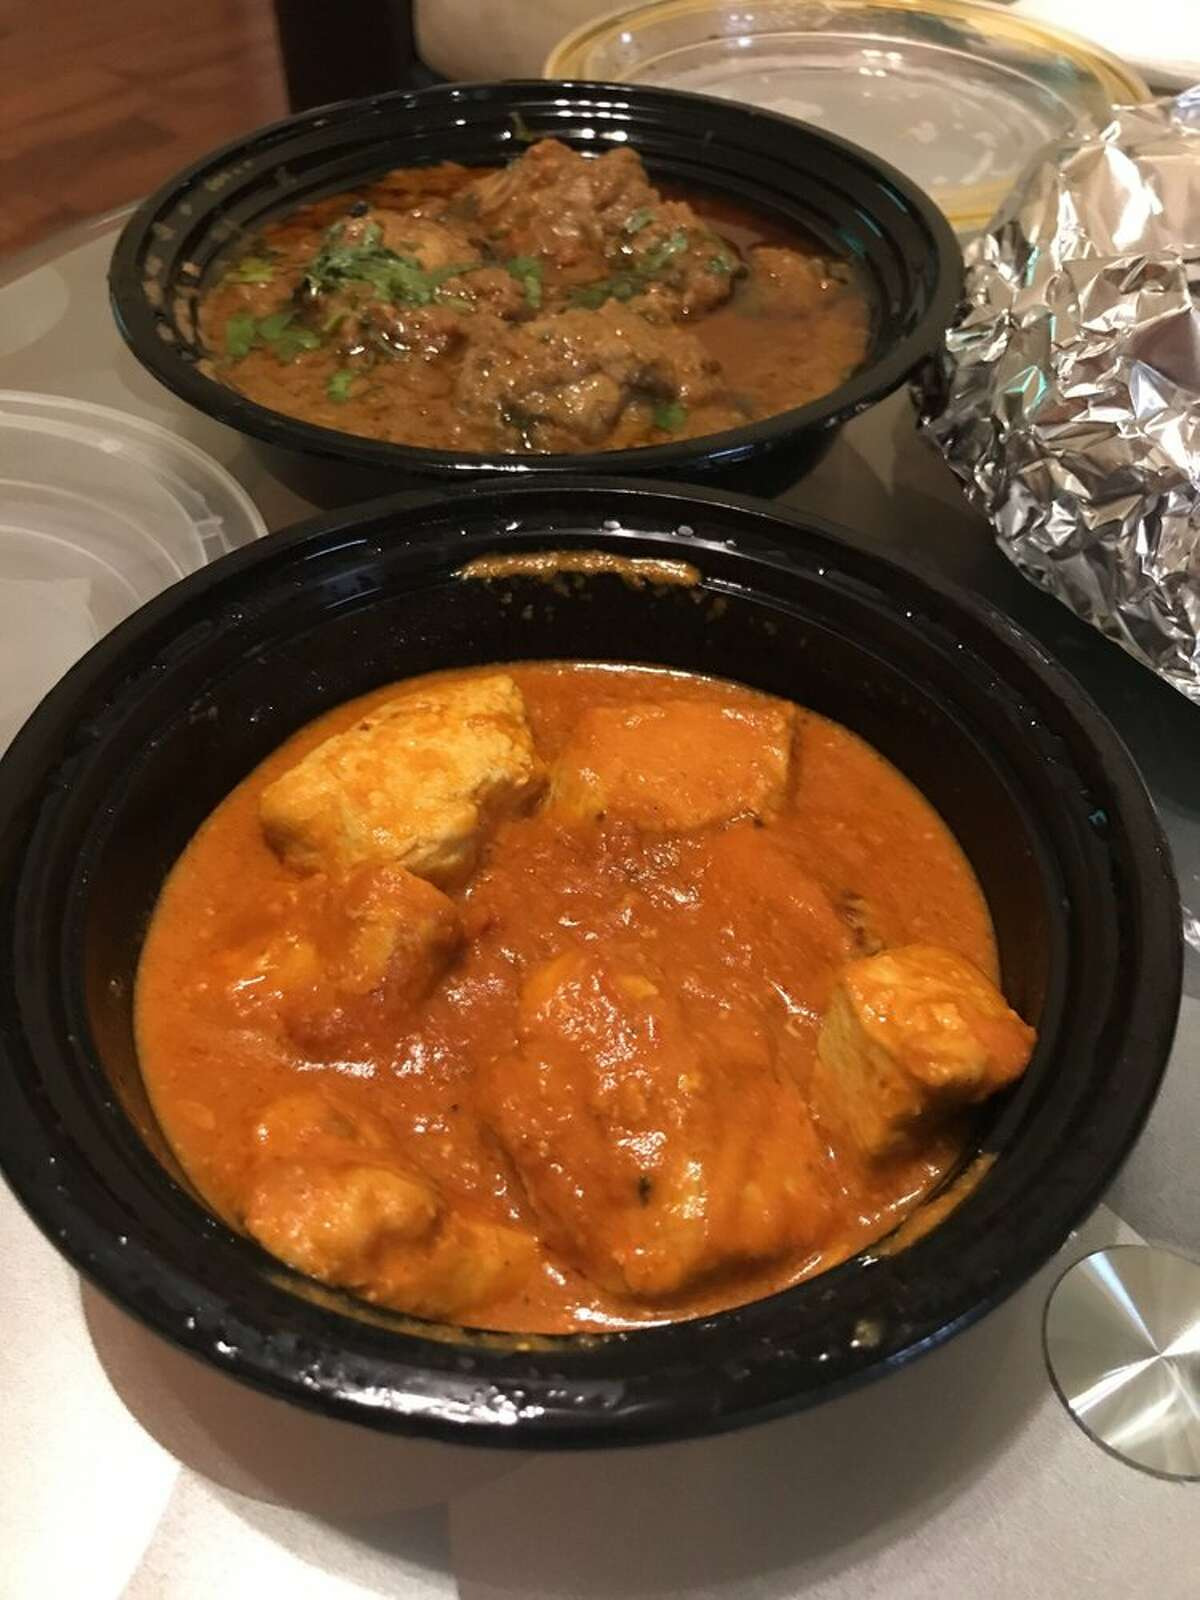 Butter ChickenChevron Family Kitchen11836 S Hwy 6 Sugar Land, TX 77498 Yelp review by Mat M: